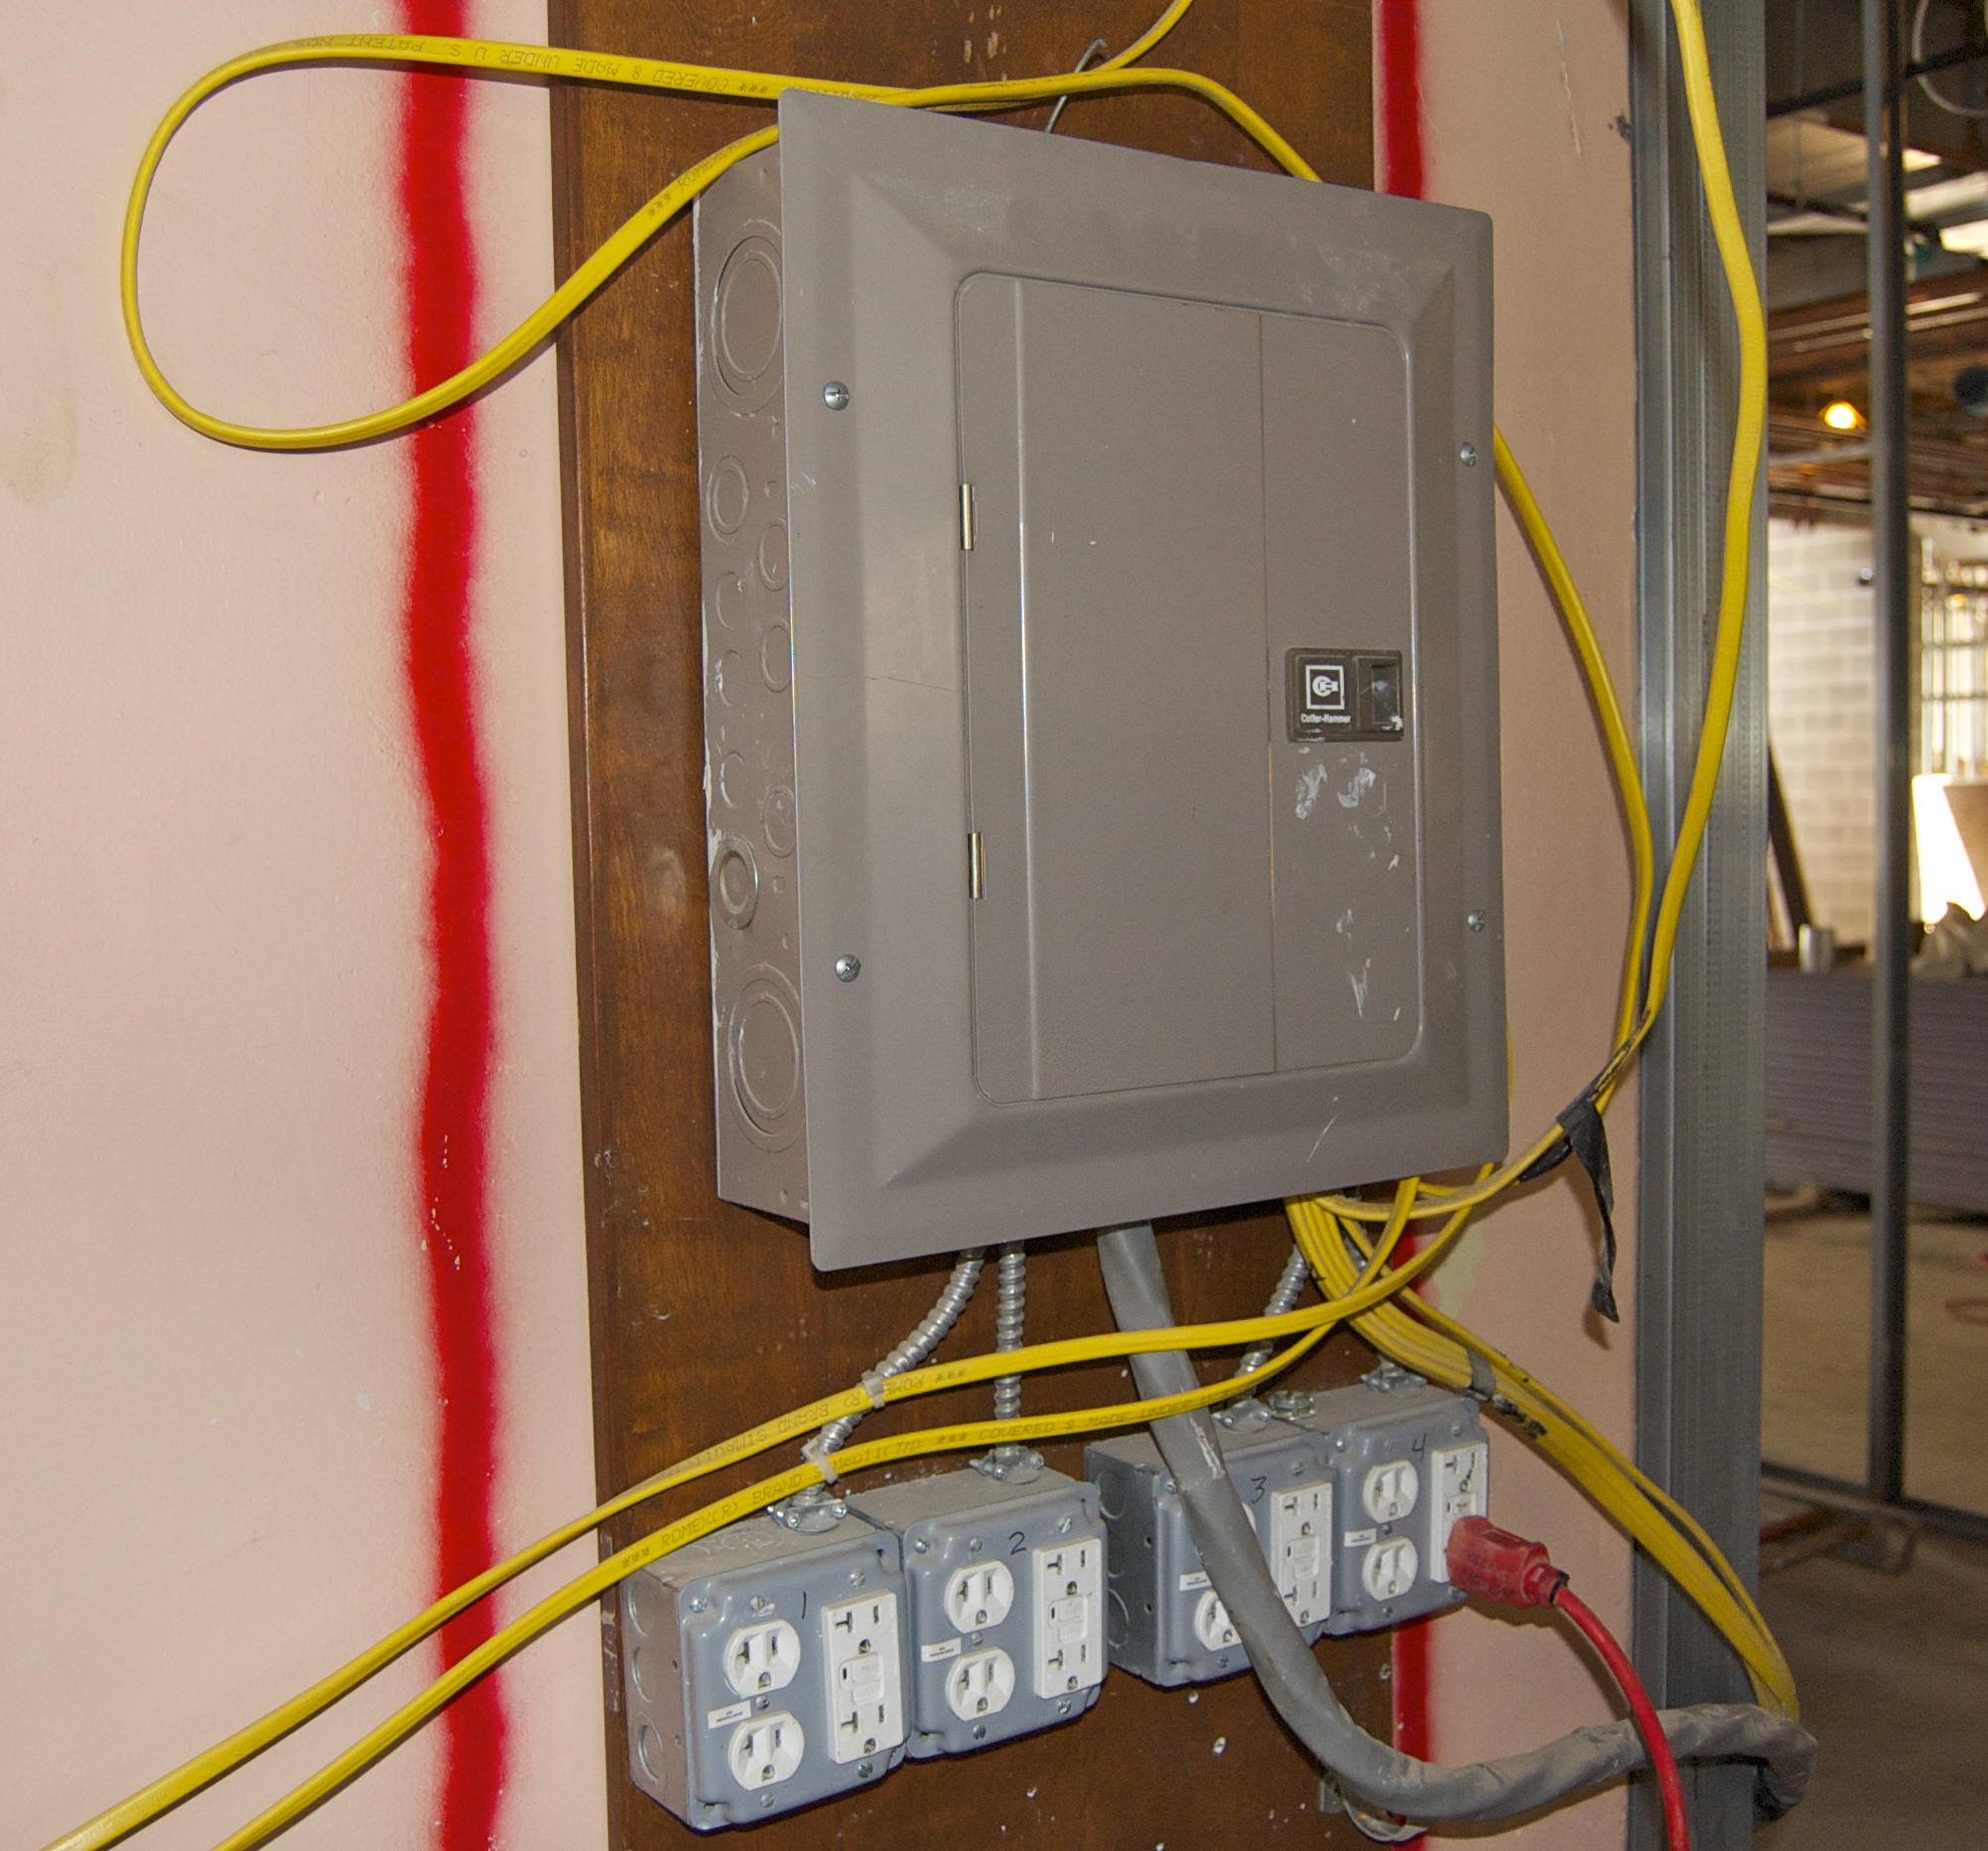 Elcosh Electronic Library Of Construction Occupational Safety And Ground Fault Circuit Interrupter Wiring This Electrical Box On The Site Has Interrupters All Outlets To Be Used With Portable Equipment